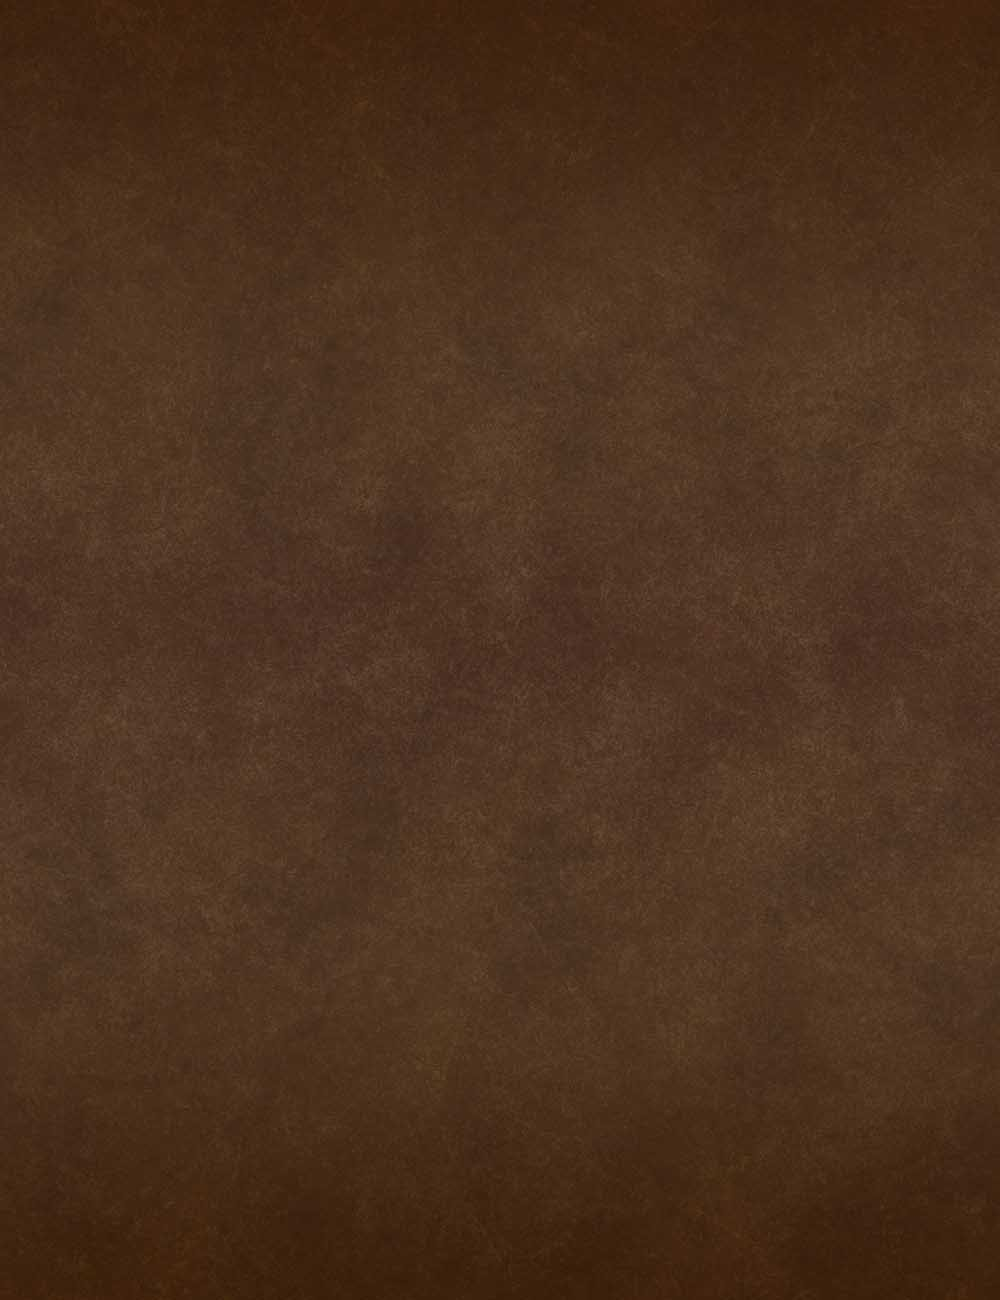 Abstract Dark Brown Old Master Backdrop For Photography - Shop Backdrop